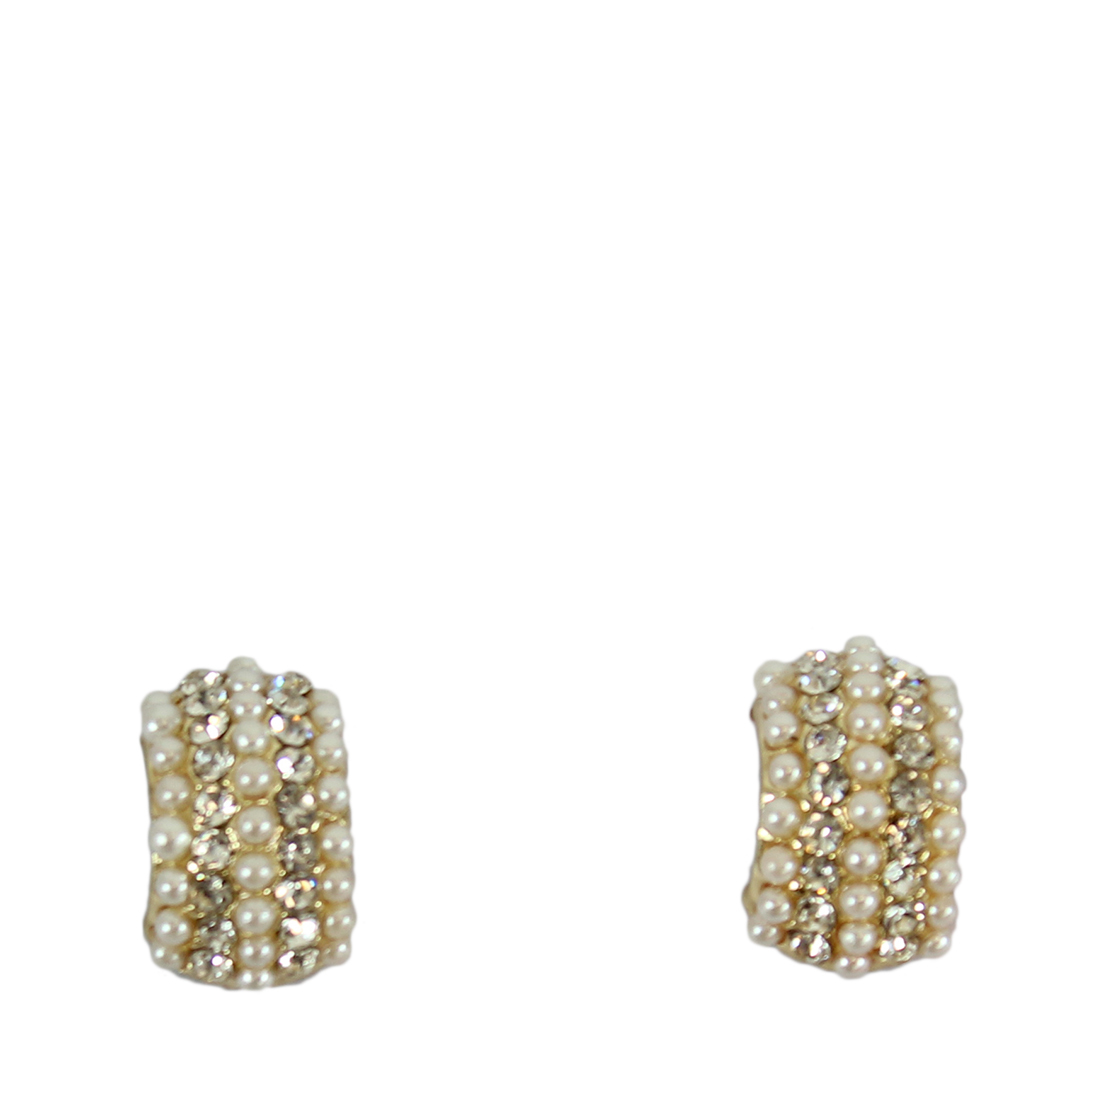 * Bended square style earrings with pearls and tiny diamonds